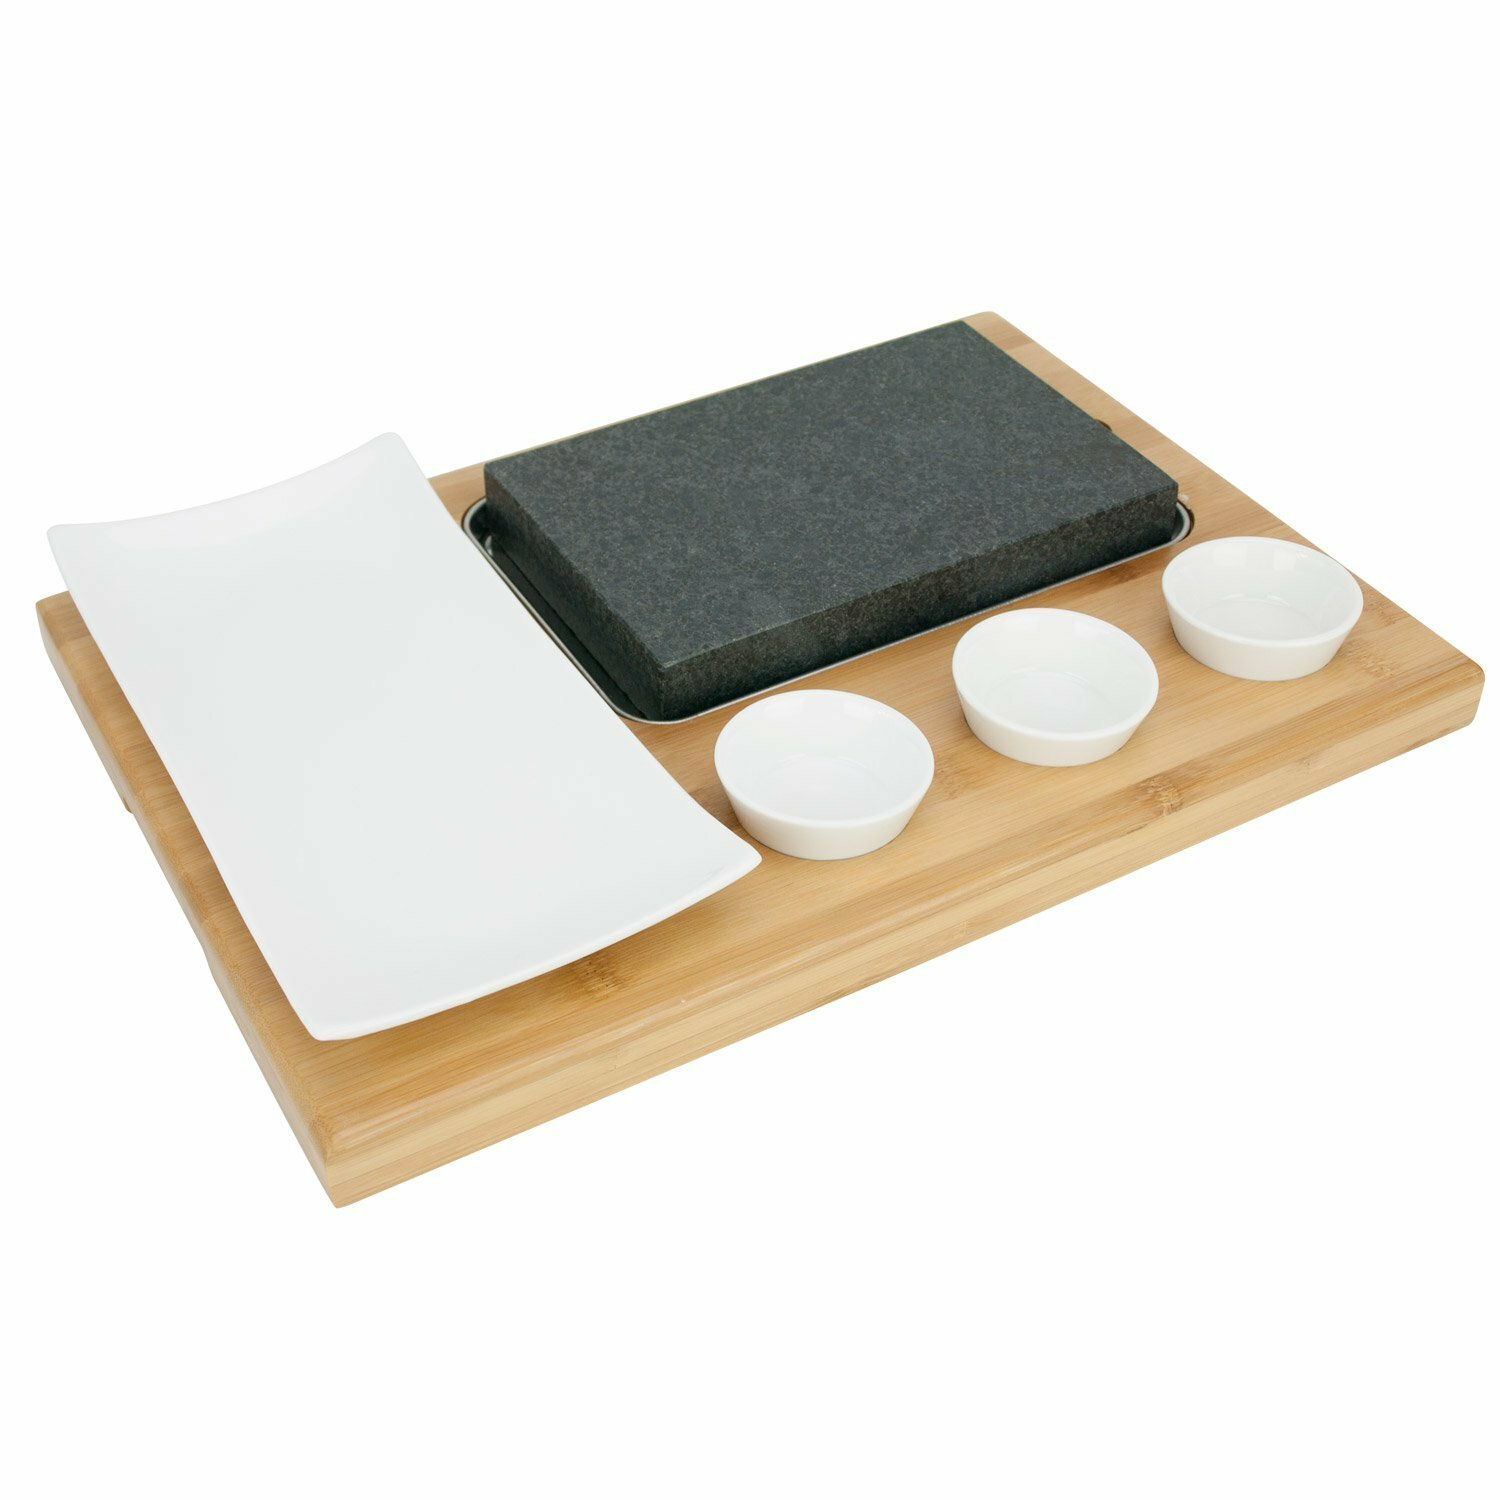 Poraty Steak Stone 7 Piece Hot Cooking Stone For Tabletop